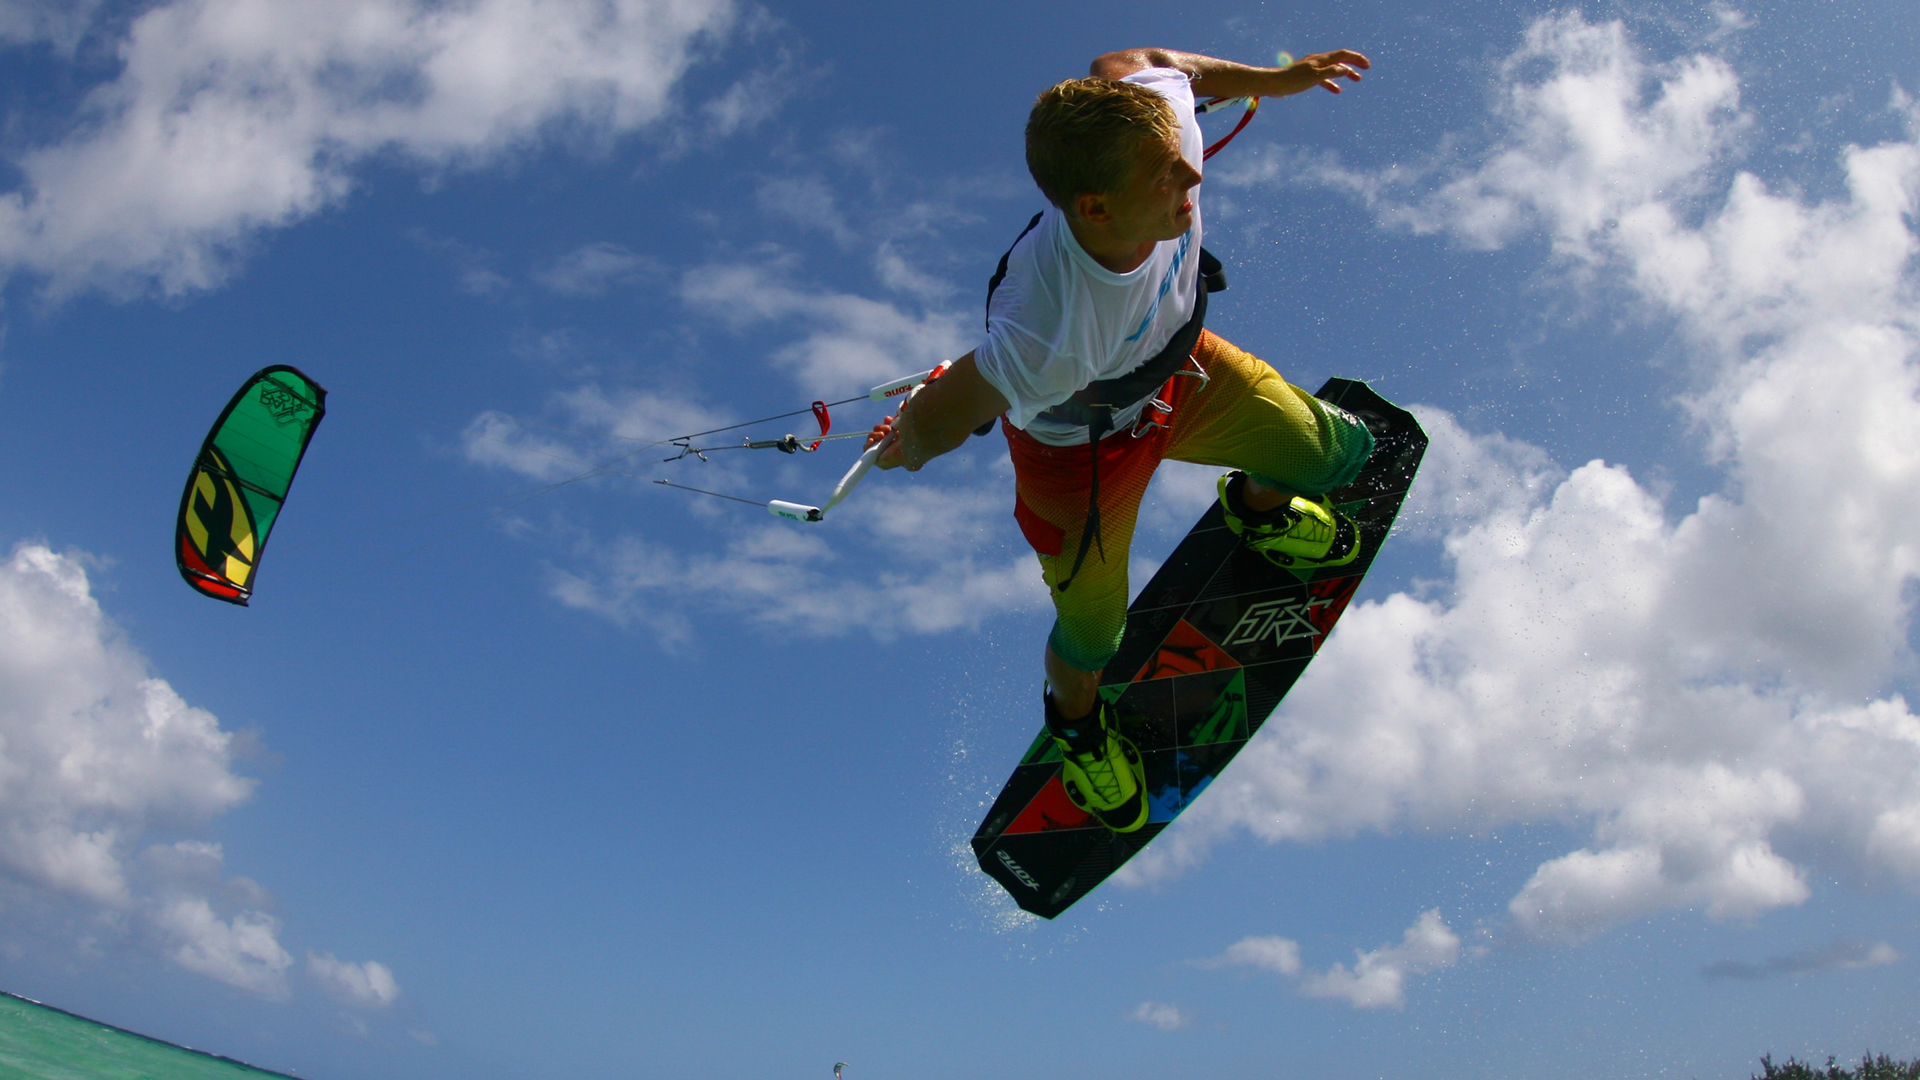 kitesurf wallpaper image - Antoine Fermon passing the bar low - in resolution: High Definition - HD 16:9 1920 X 1080